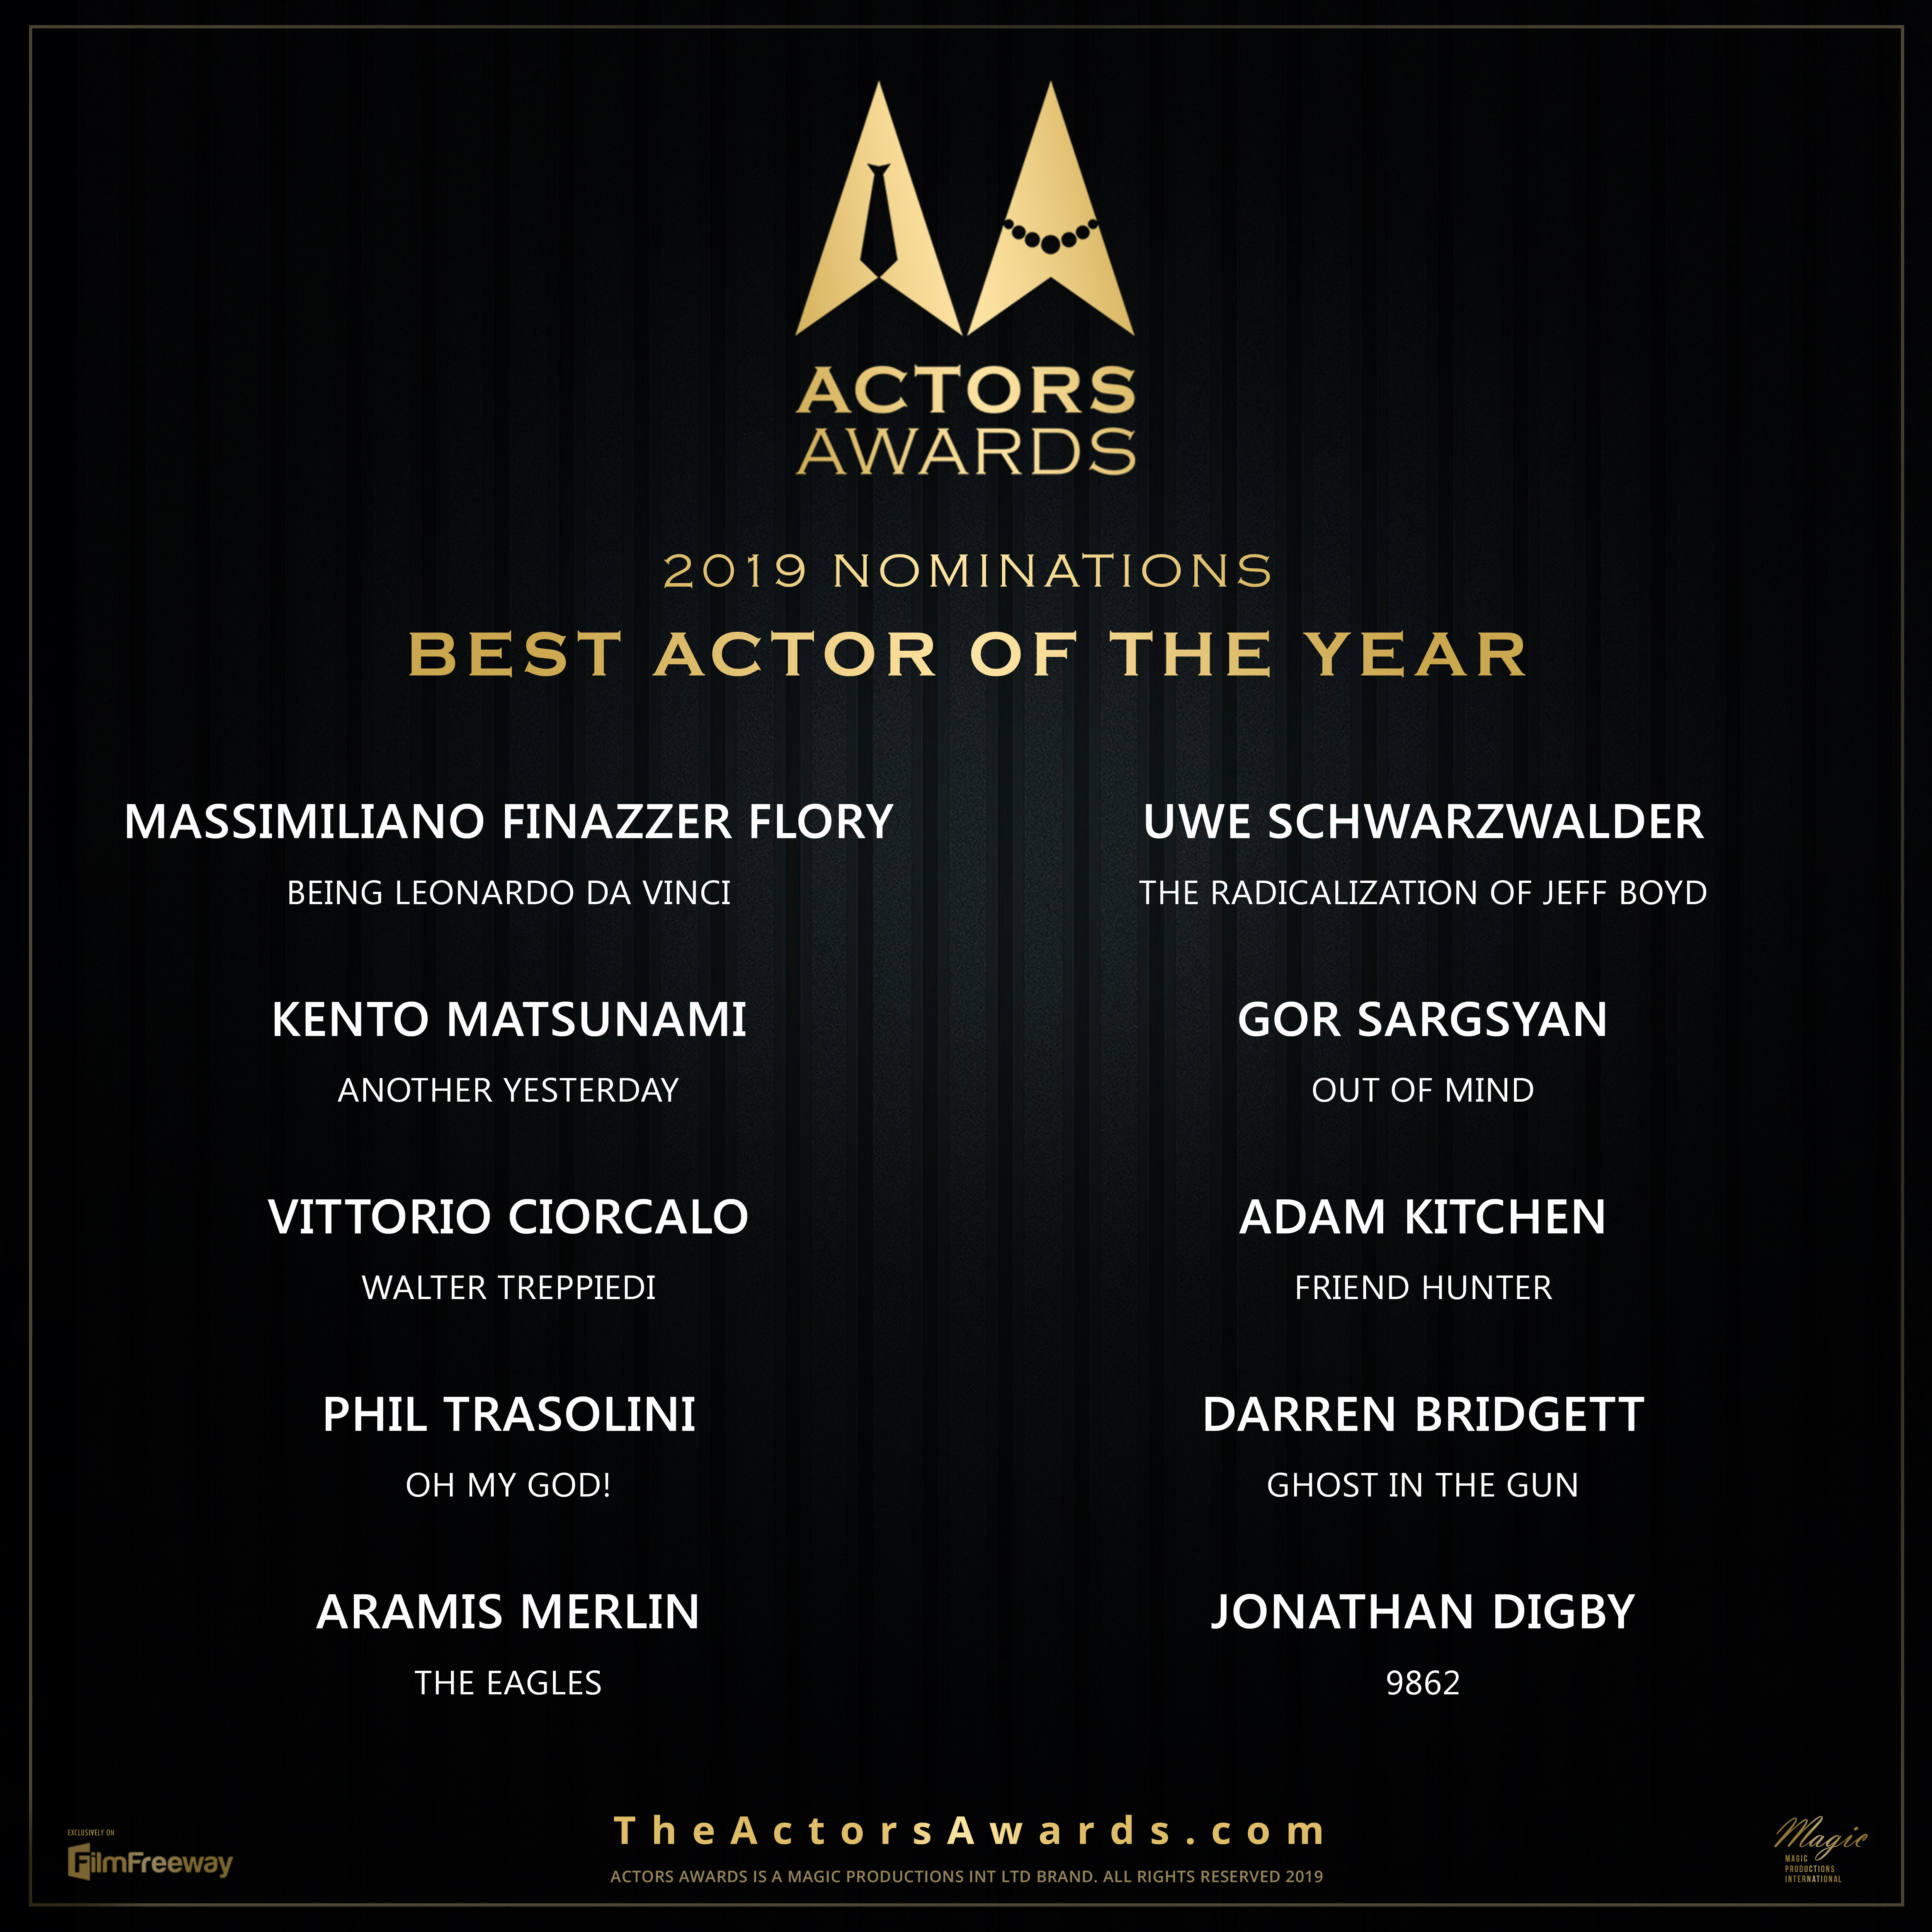 ACTORS AWARDS Best Actor